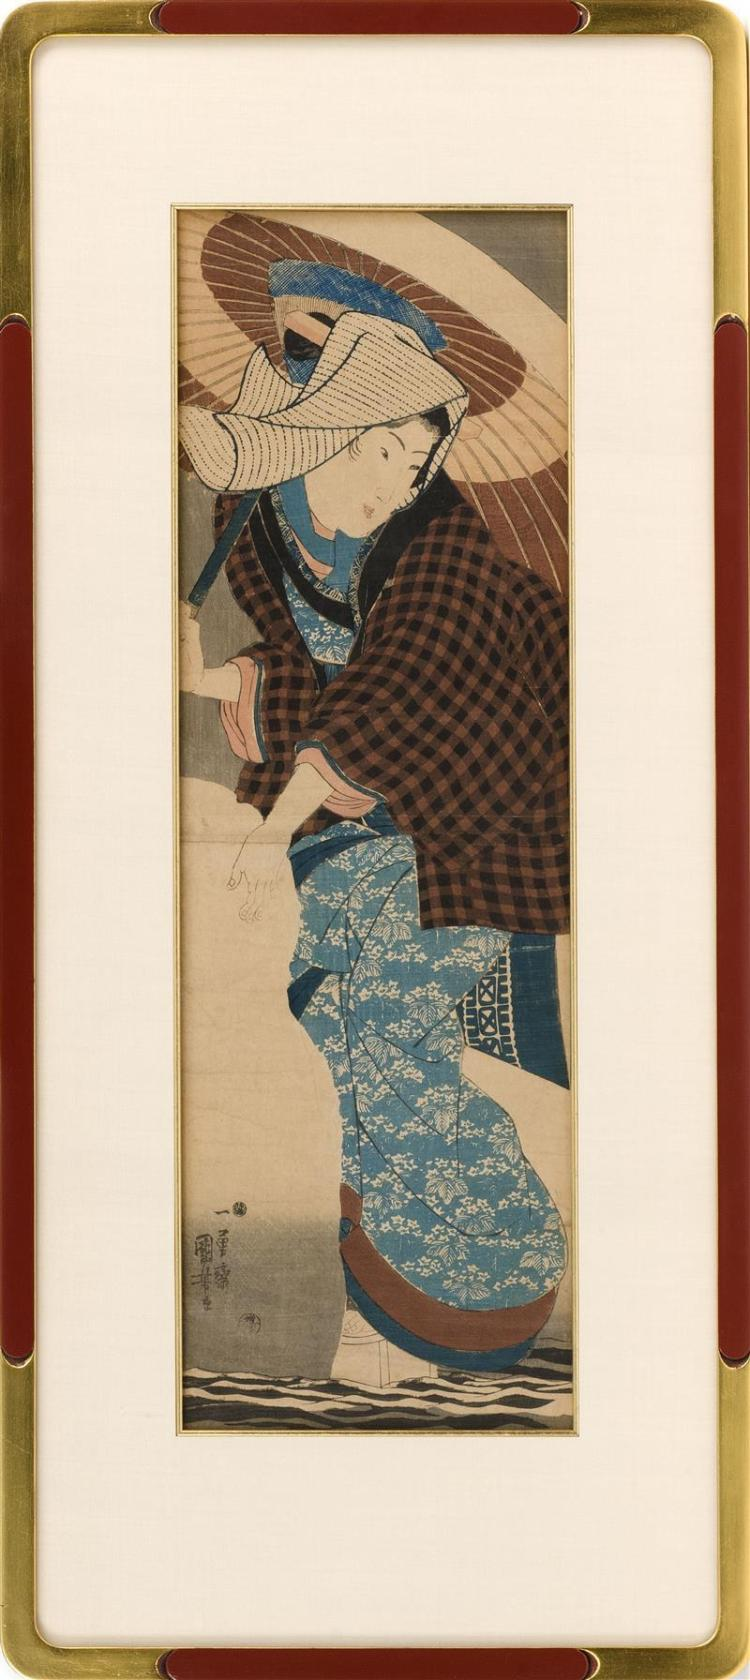 UTAGAWA KUNIYOSHI A woman wearing a black and brown checkered jacket and carrying an umbrella. Framed 36